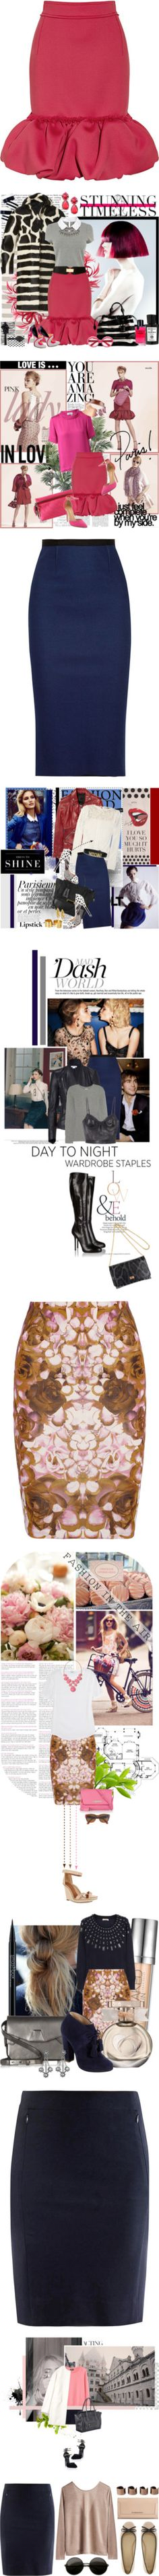 """""""It's a Stretch: Jersey Skirts"""" by polyvore-editorial ❤ liked on Polyvore"""